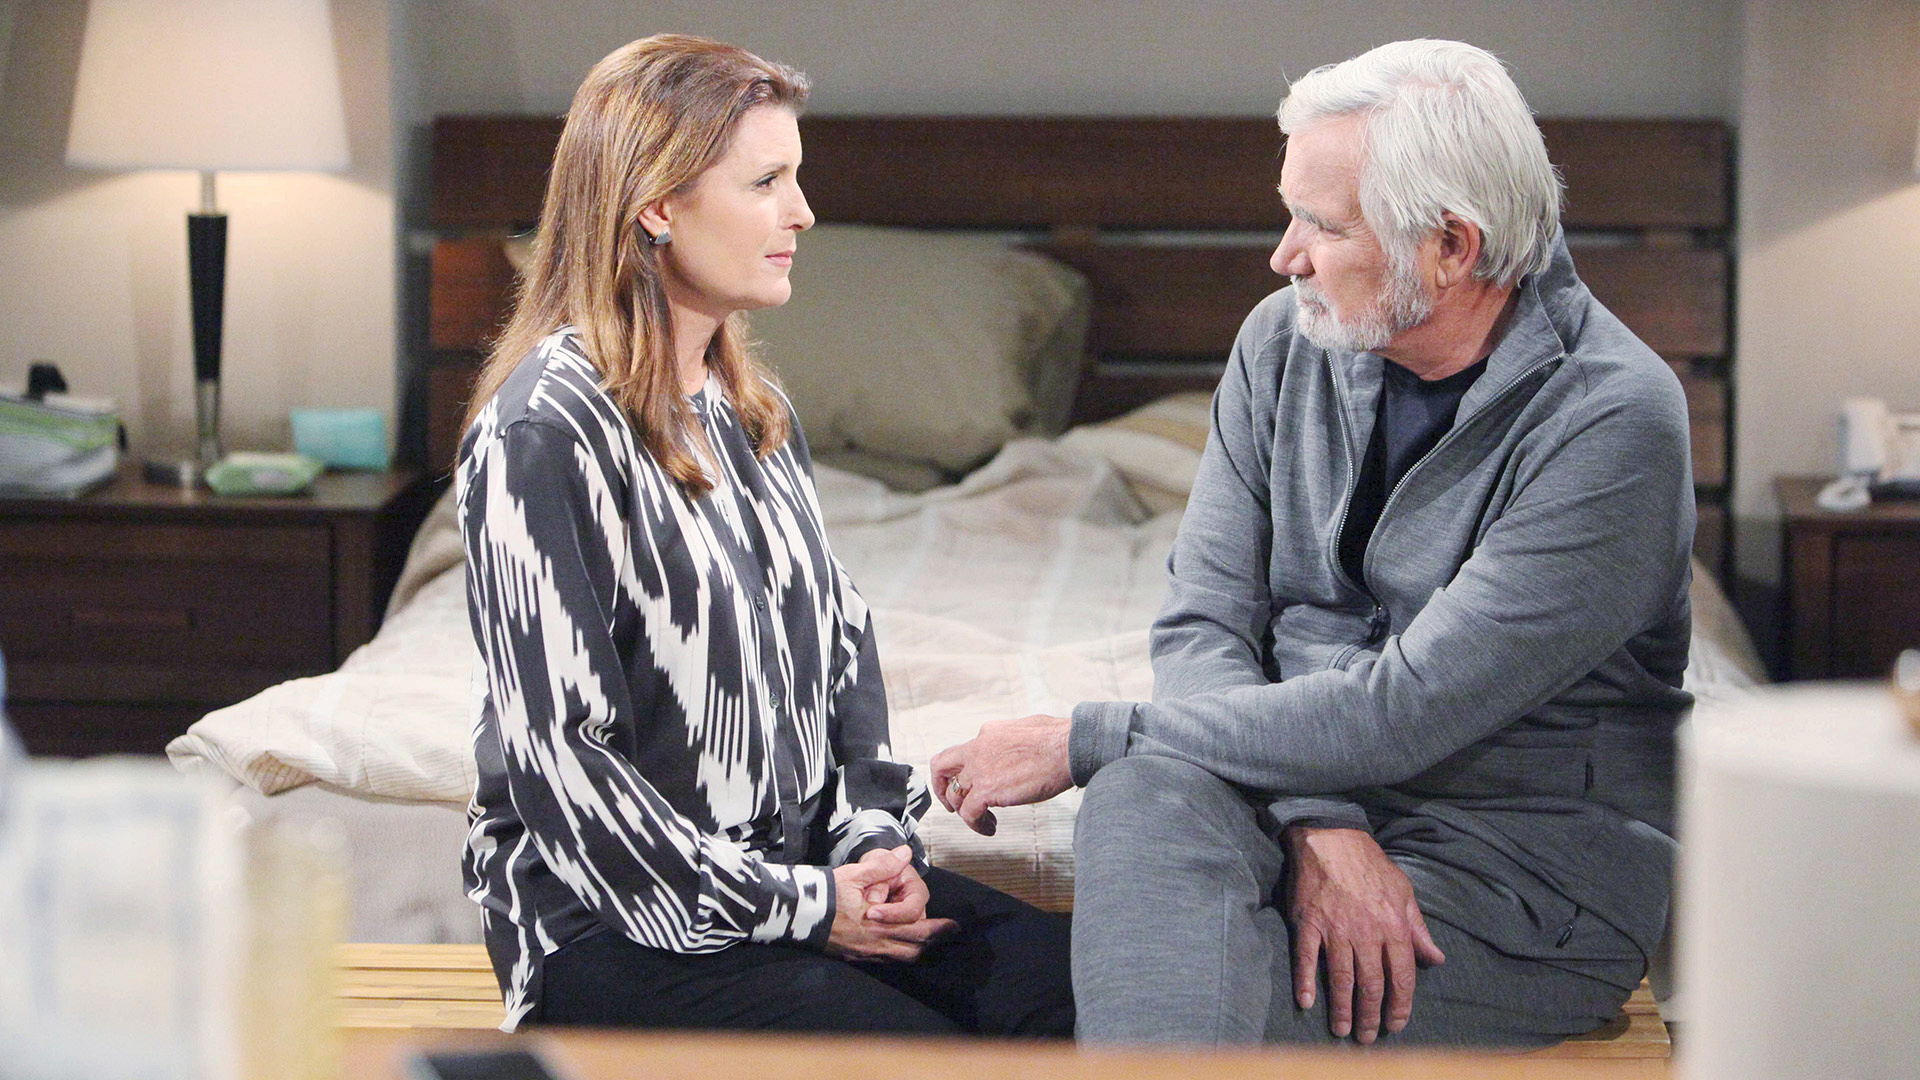 Sheila uses Eric's anger to her advantage in an attempt to earn his trust.